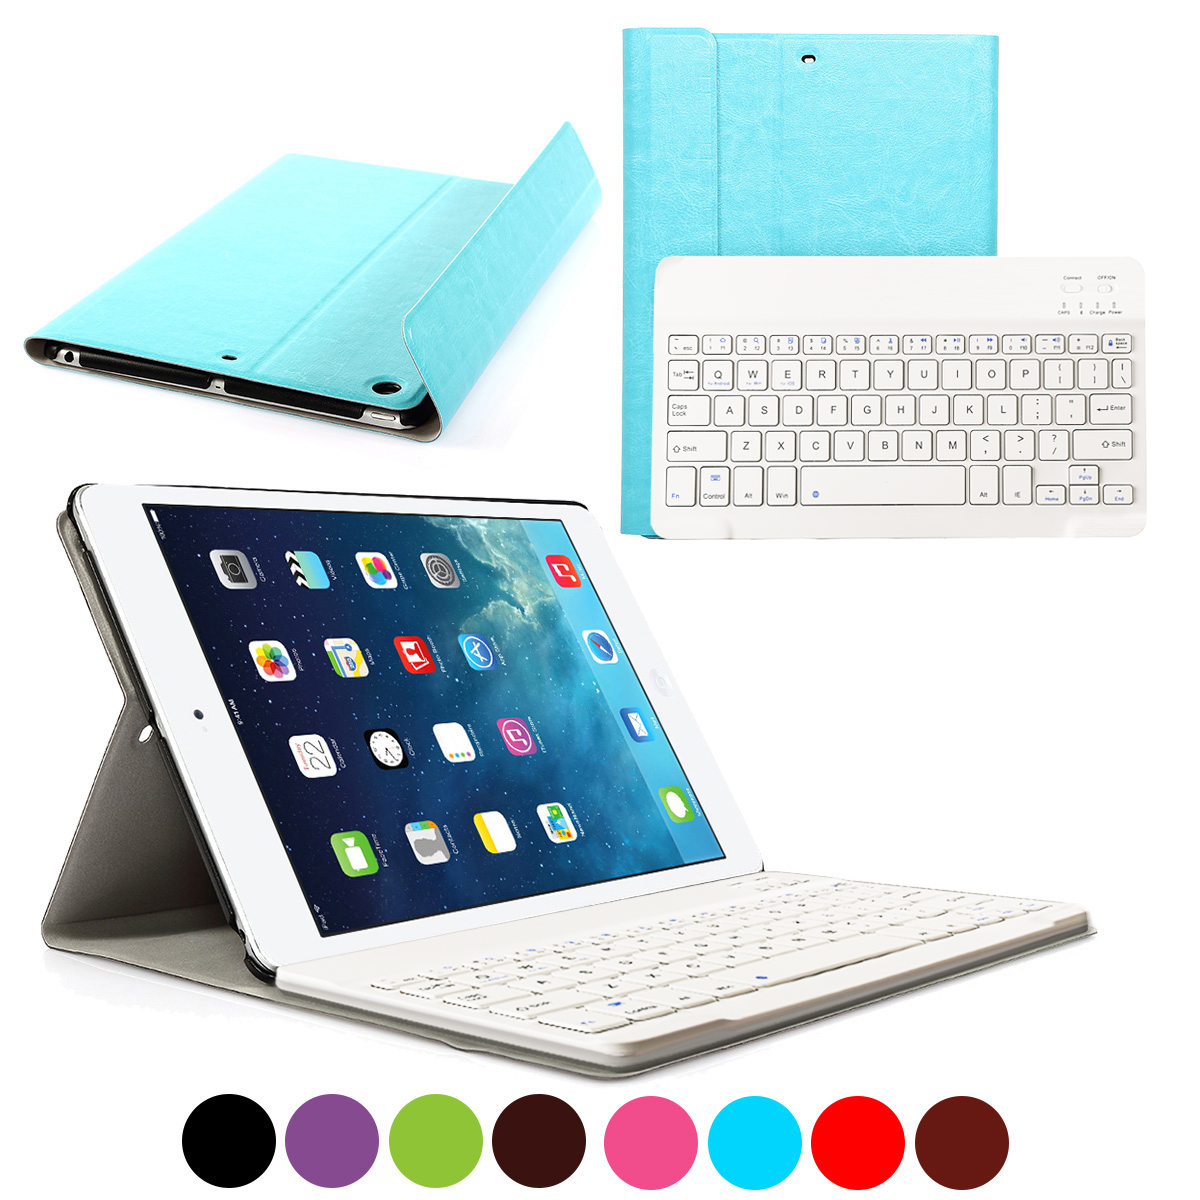 CoastaCloud Removeable Keyboard FOR Apple NEW iPad 2017 Wireless Bluetooth Keyboard 9.7 inch with Stand Folio Case Cover for iPad Air 1/ iPad 5 Rechargeable USB Cable PU Leather